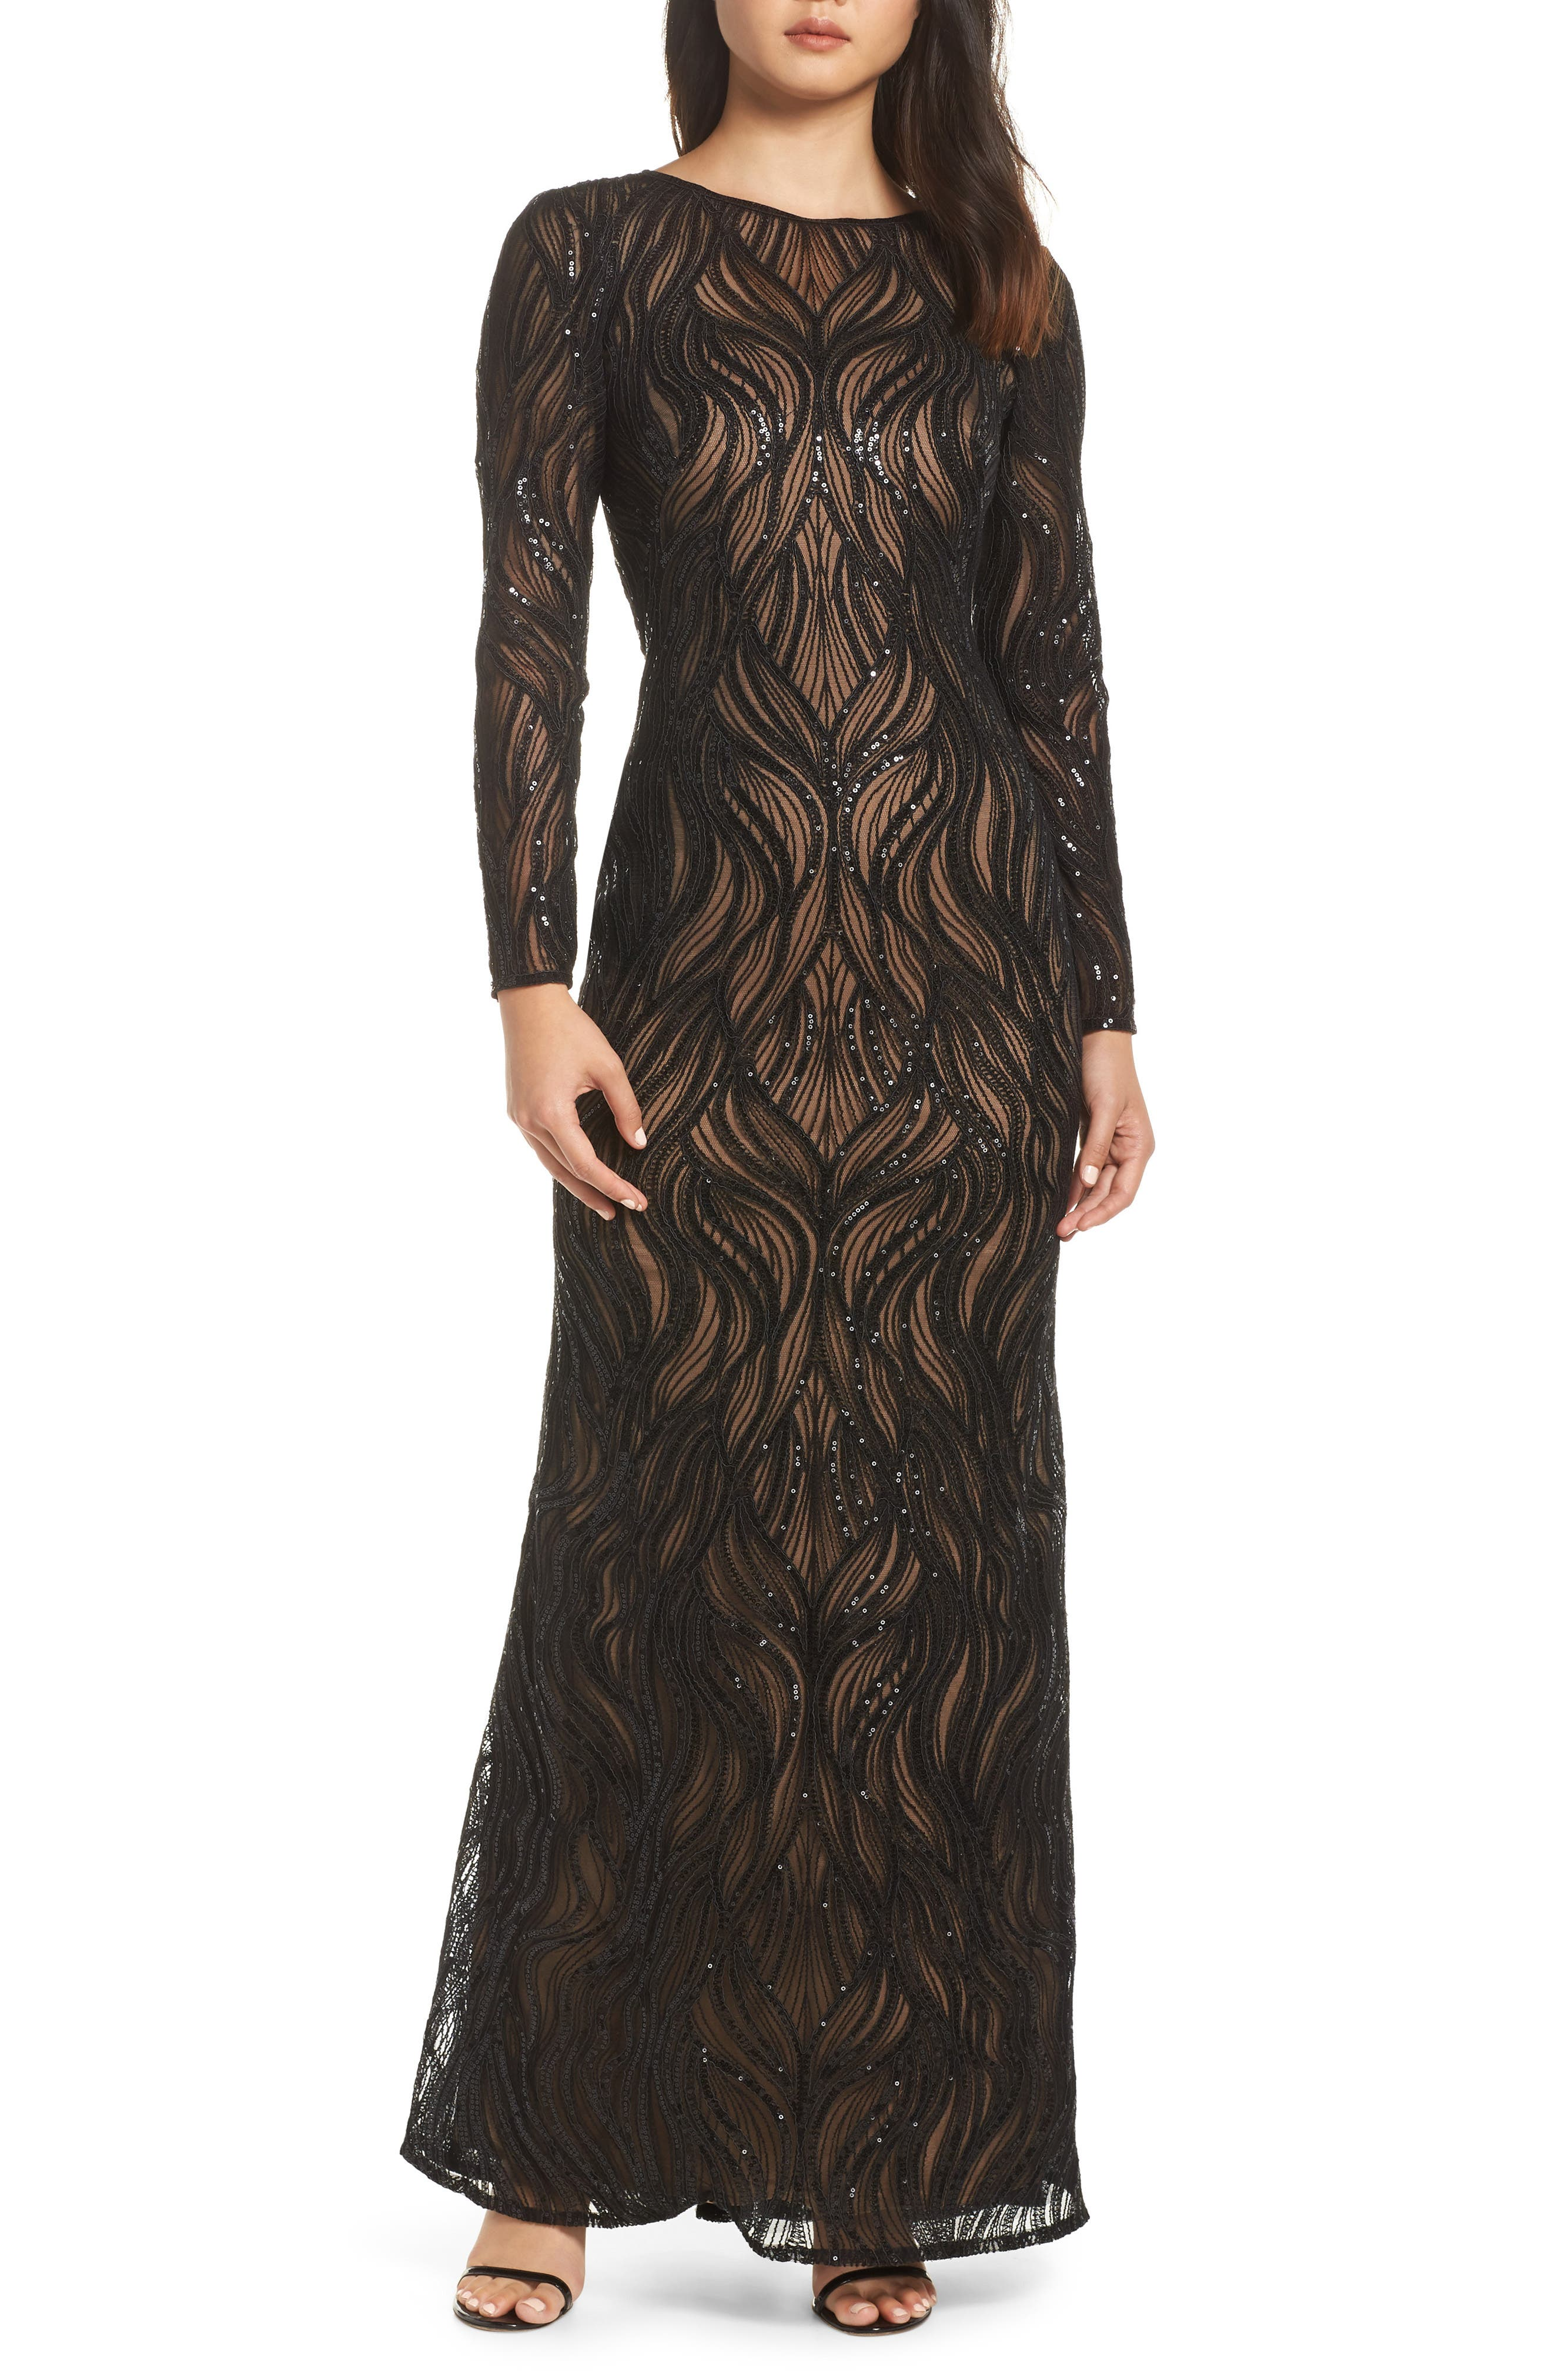 Tadashi Shoji Long Sleeve Sequined Mesh Evening Dress, Black